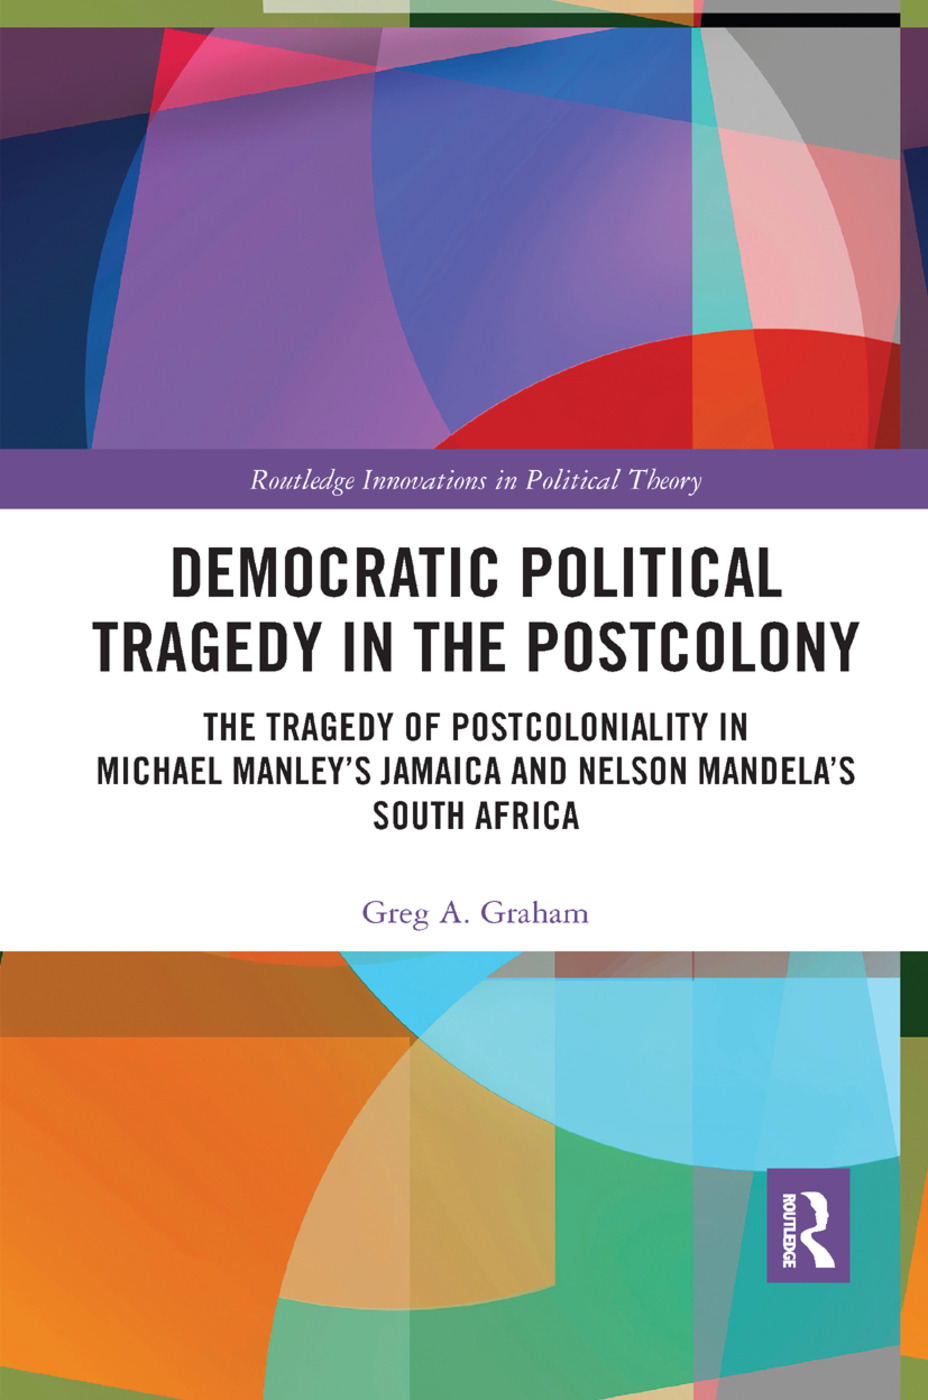 Democratic Political Tragedy in the Postcolony: The Tragedy of Postcoloniality in Michael Manley's Jamaica and Nelson Mandela's South Africa book cover